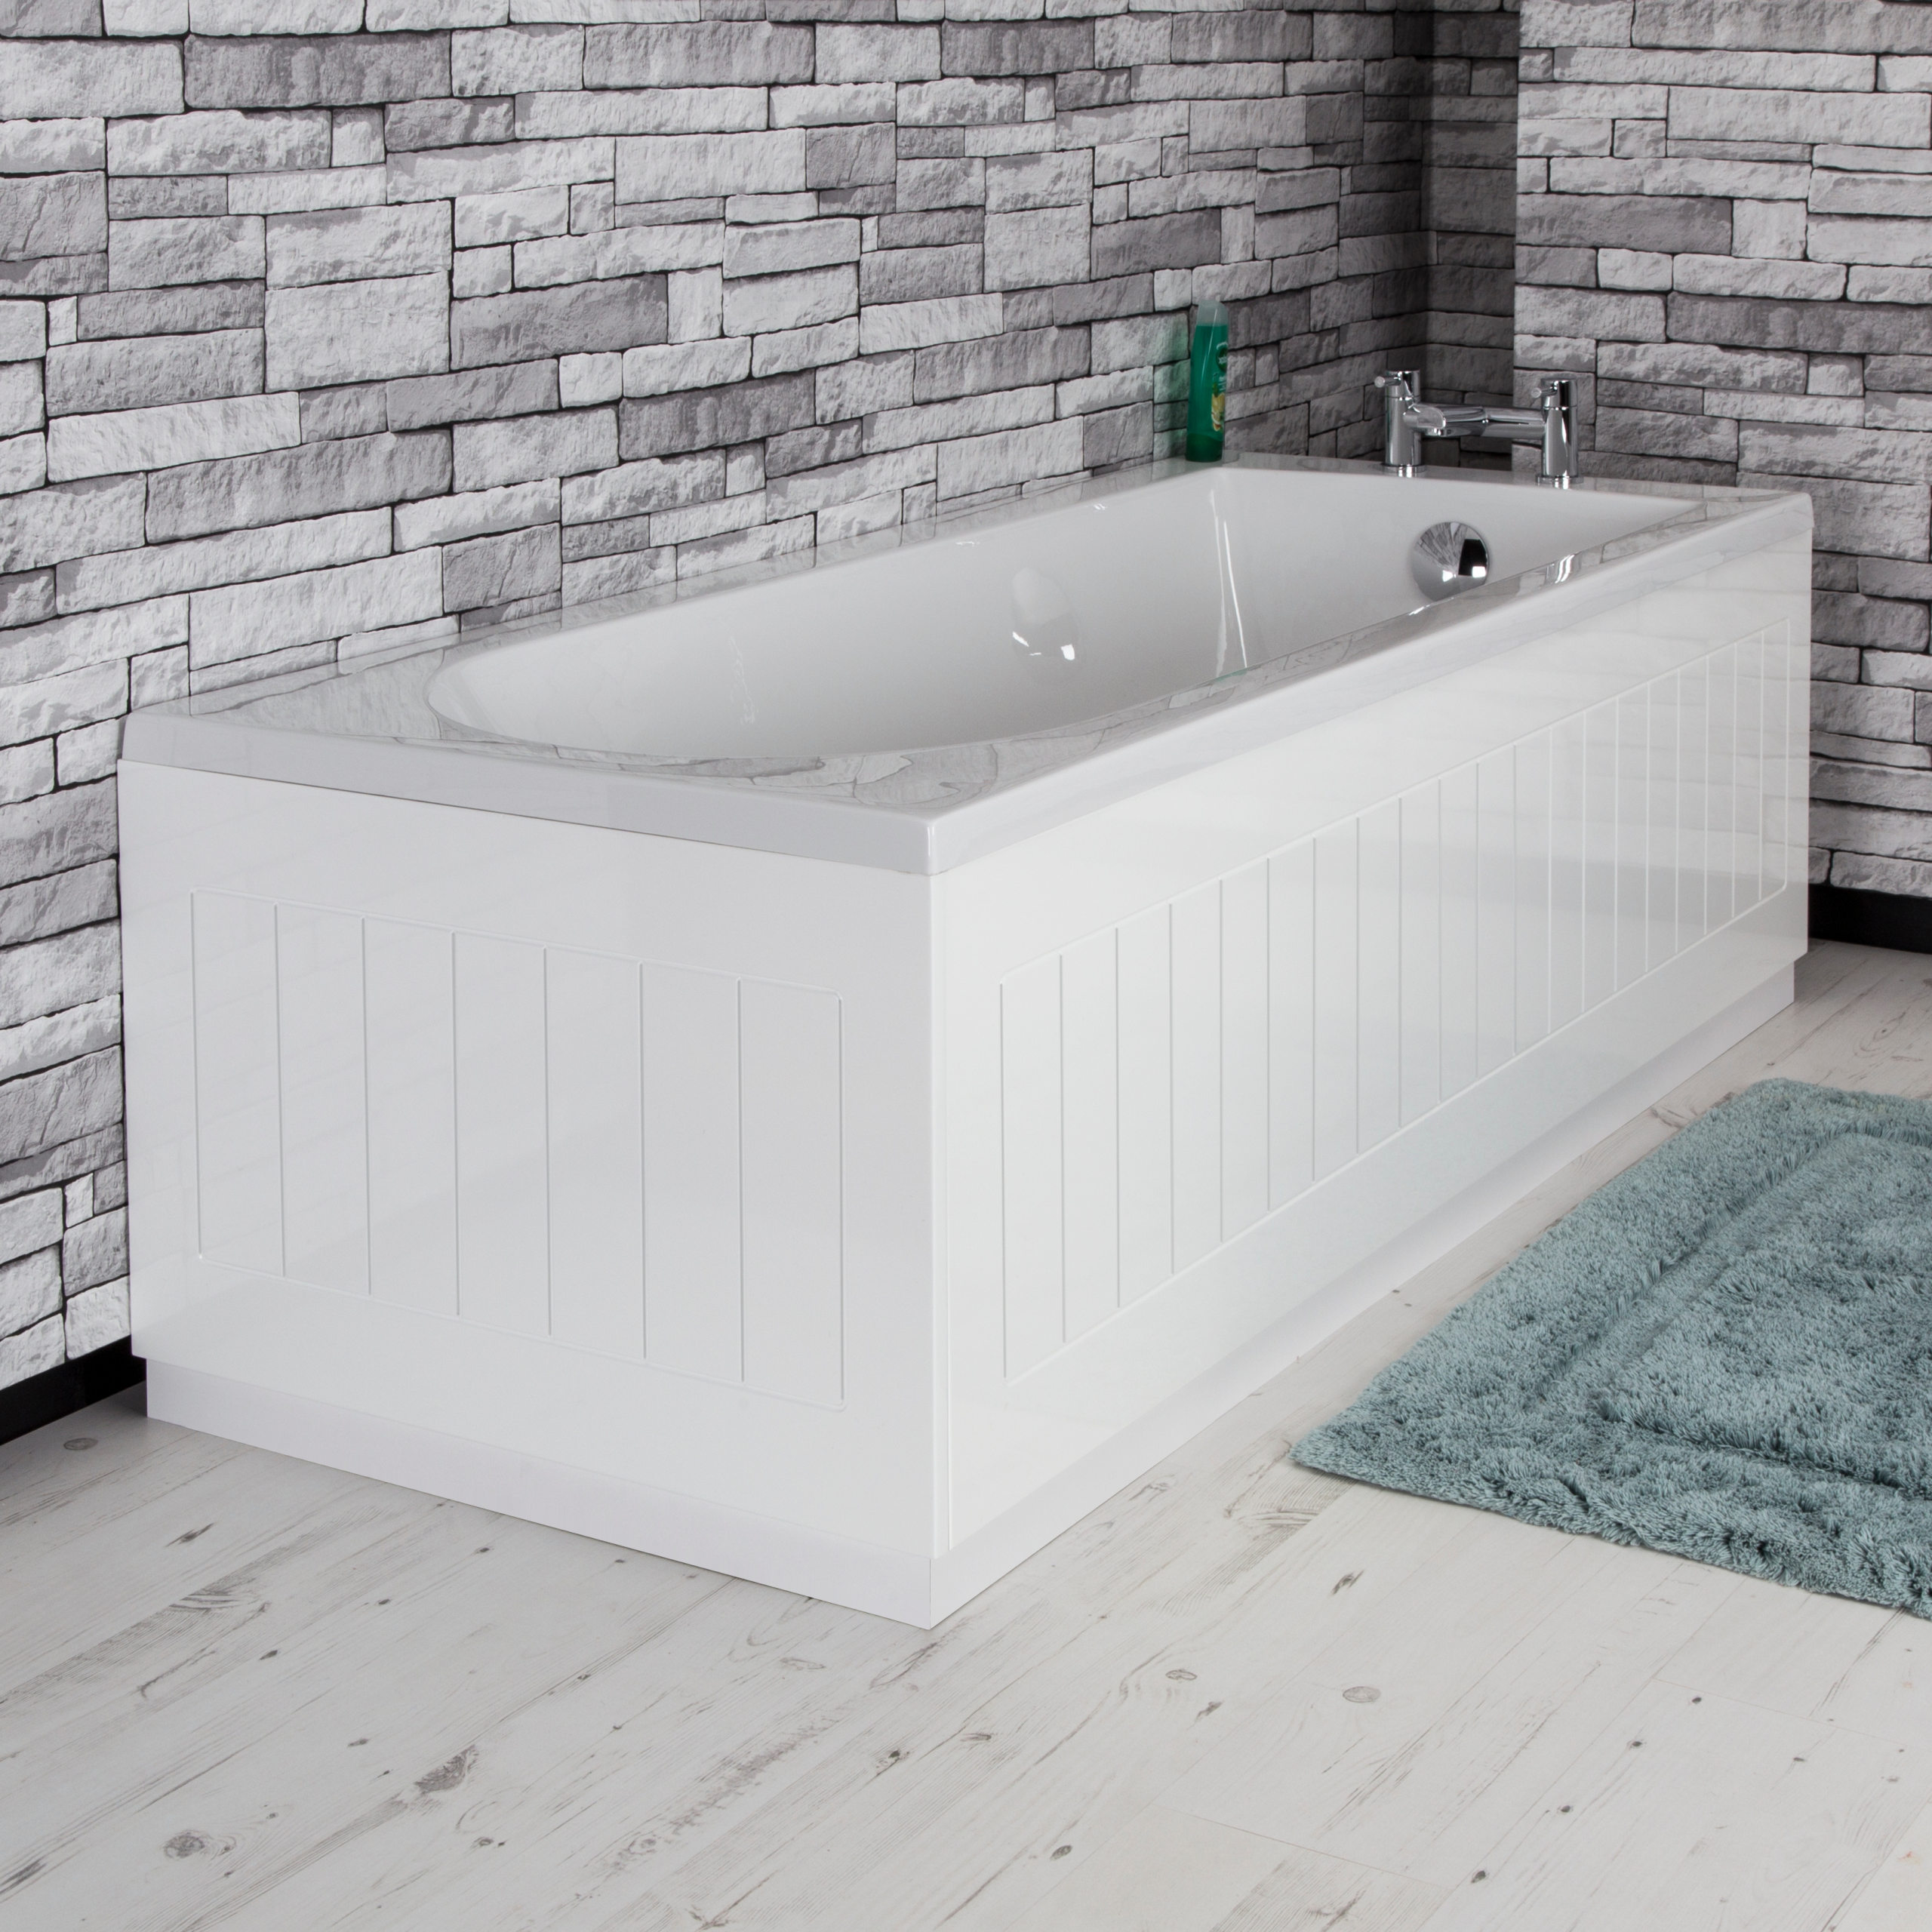 Details About Modern Tongue & Groove White Mdf Front Bath Side Panel 1700Mm Adjustable Plinth 40+ Tongue Groove Bathroom Inspirations